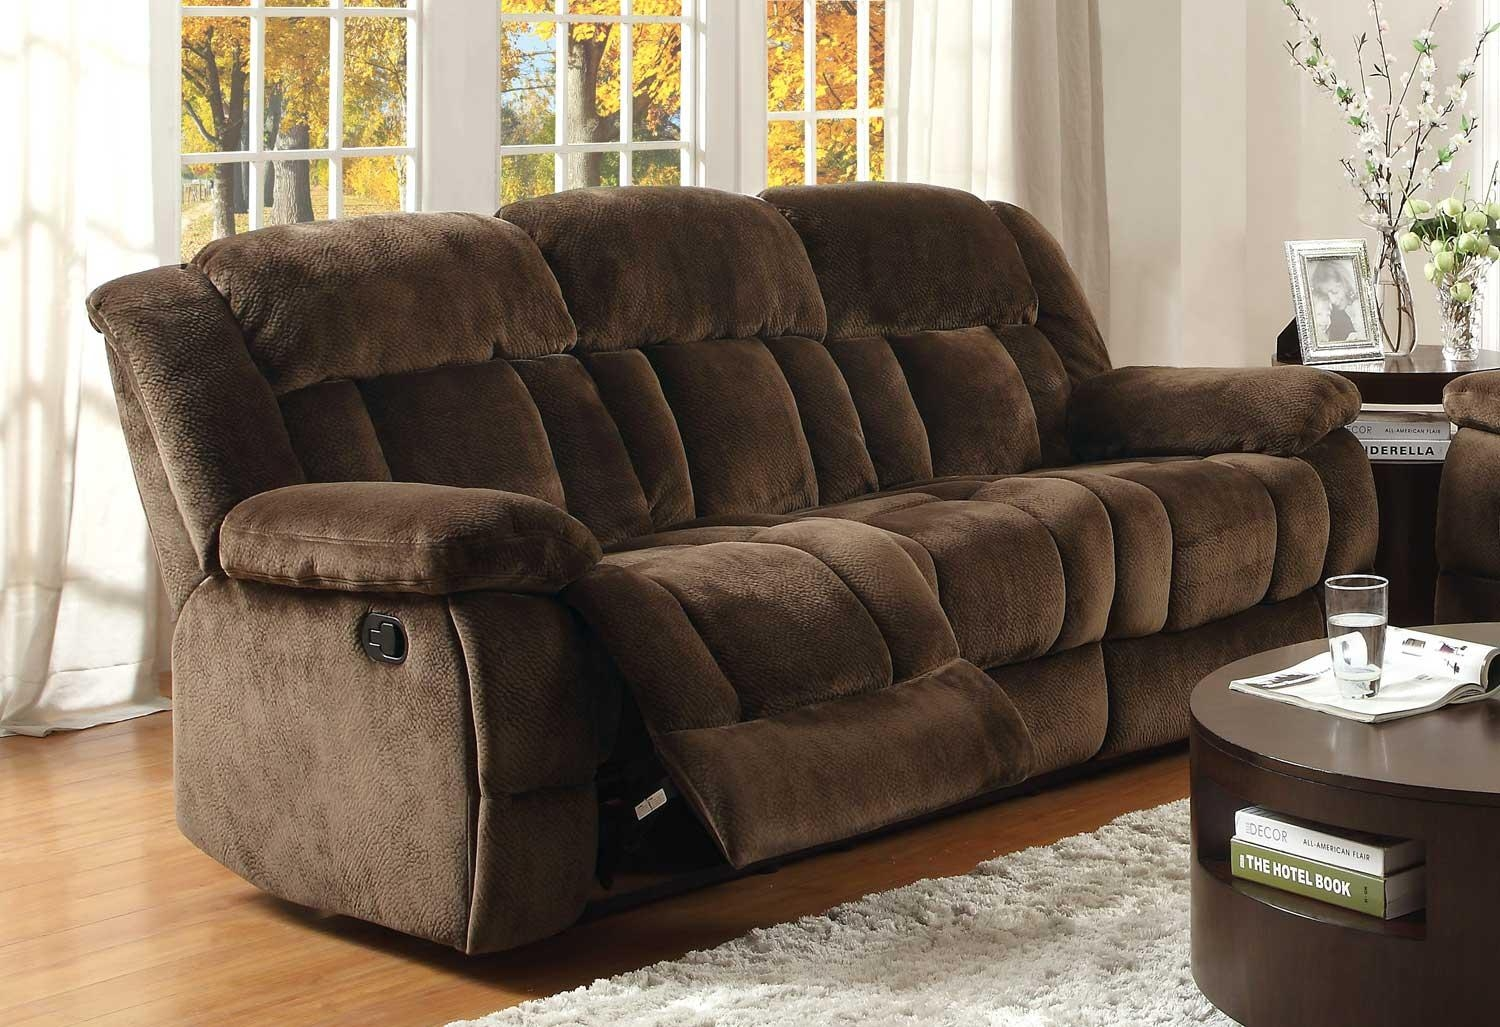 Sofas Center : Furniture Romantic Loveseat Recliner With Console Within Sofas With Console (View 12 of 20)